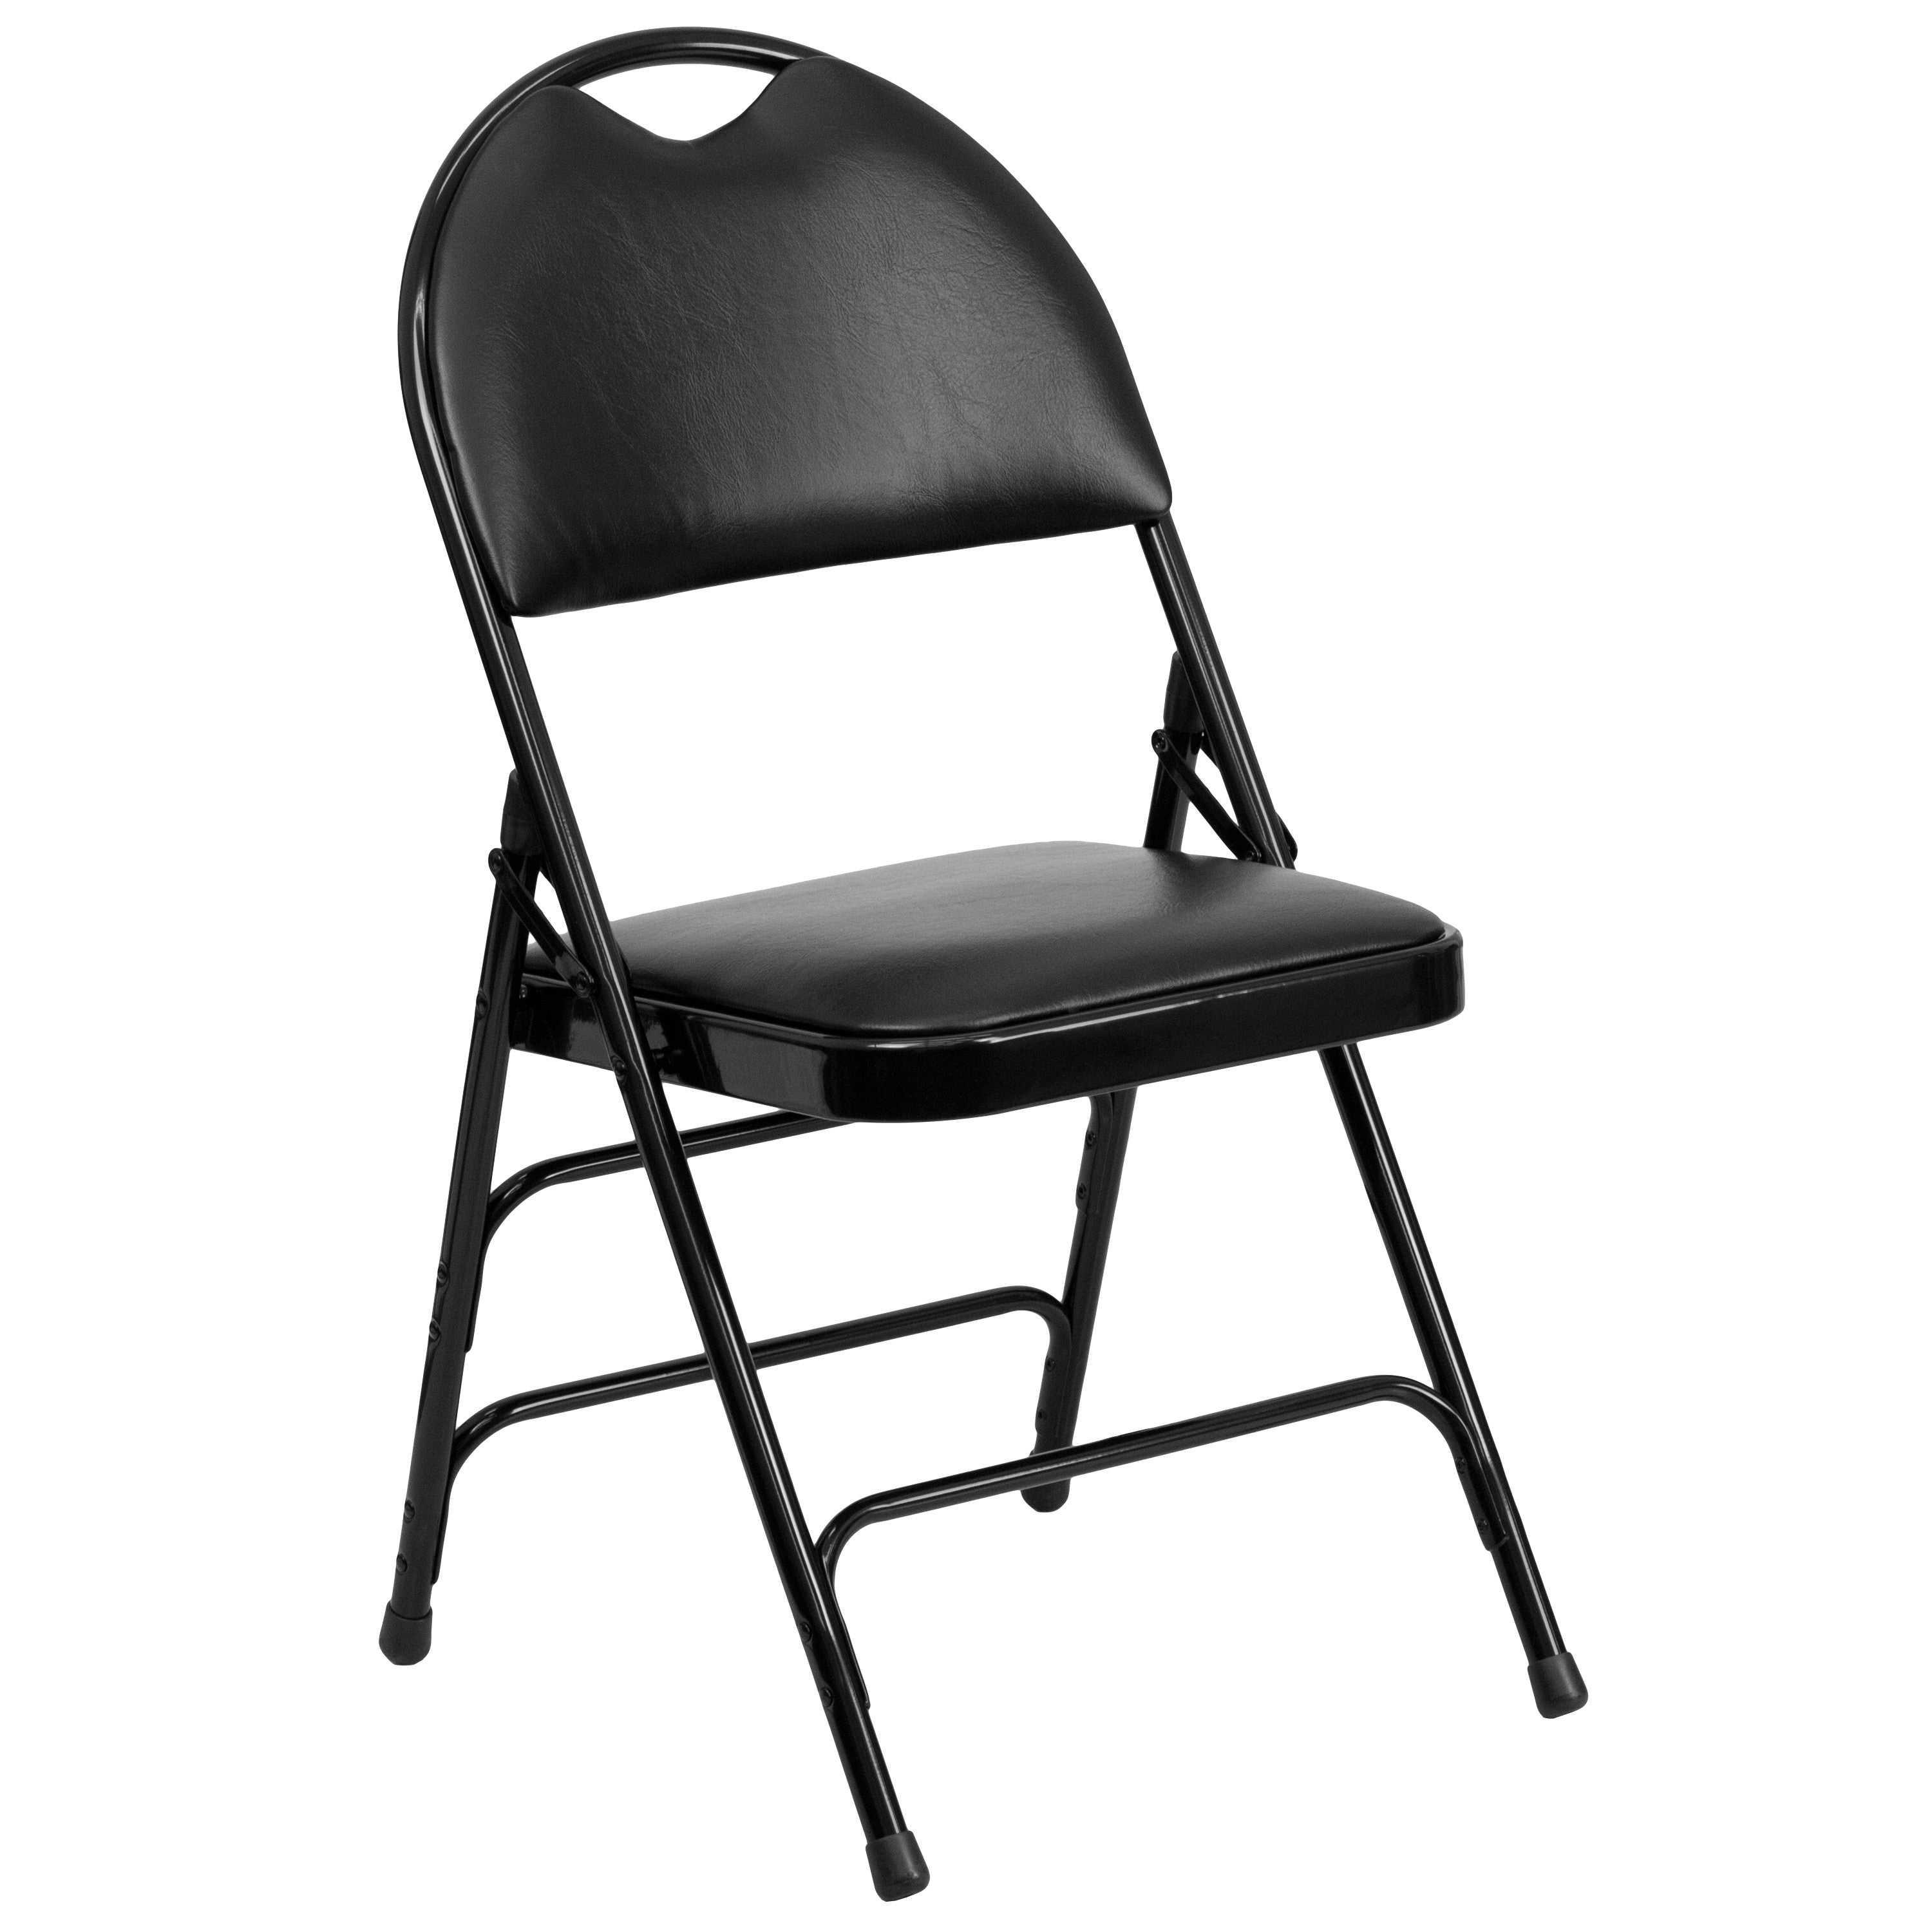 Black folding chairs - Folding Chairs Are A Practical Choice For Social Activities And For Everyday Use In The Home